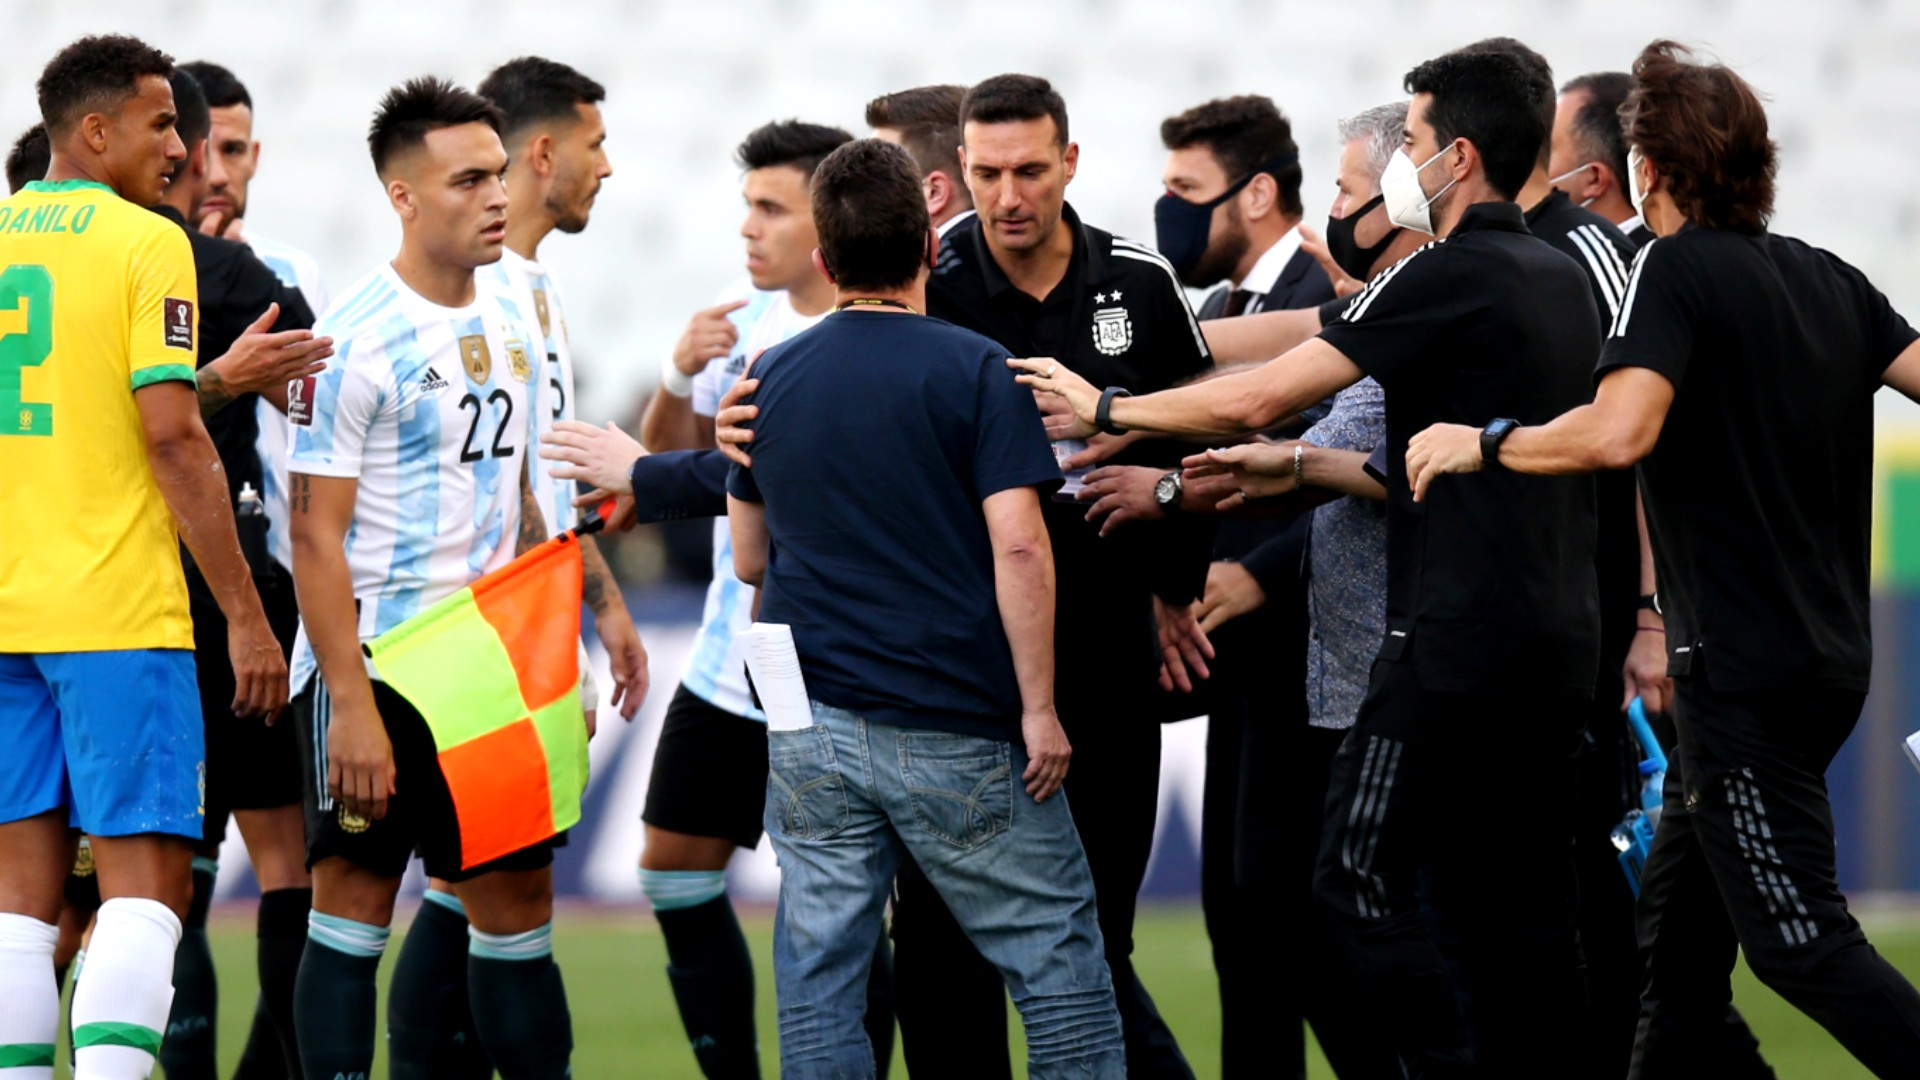 Brazil vs. Argentina suspended: Why World Cup qualifier was not played